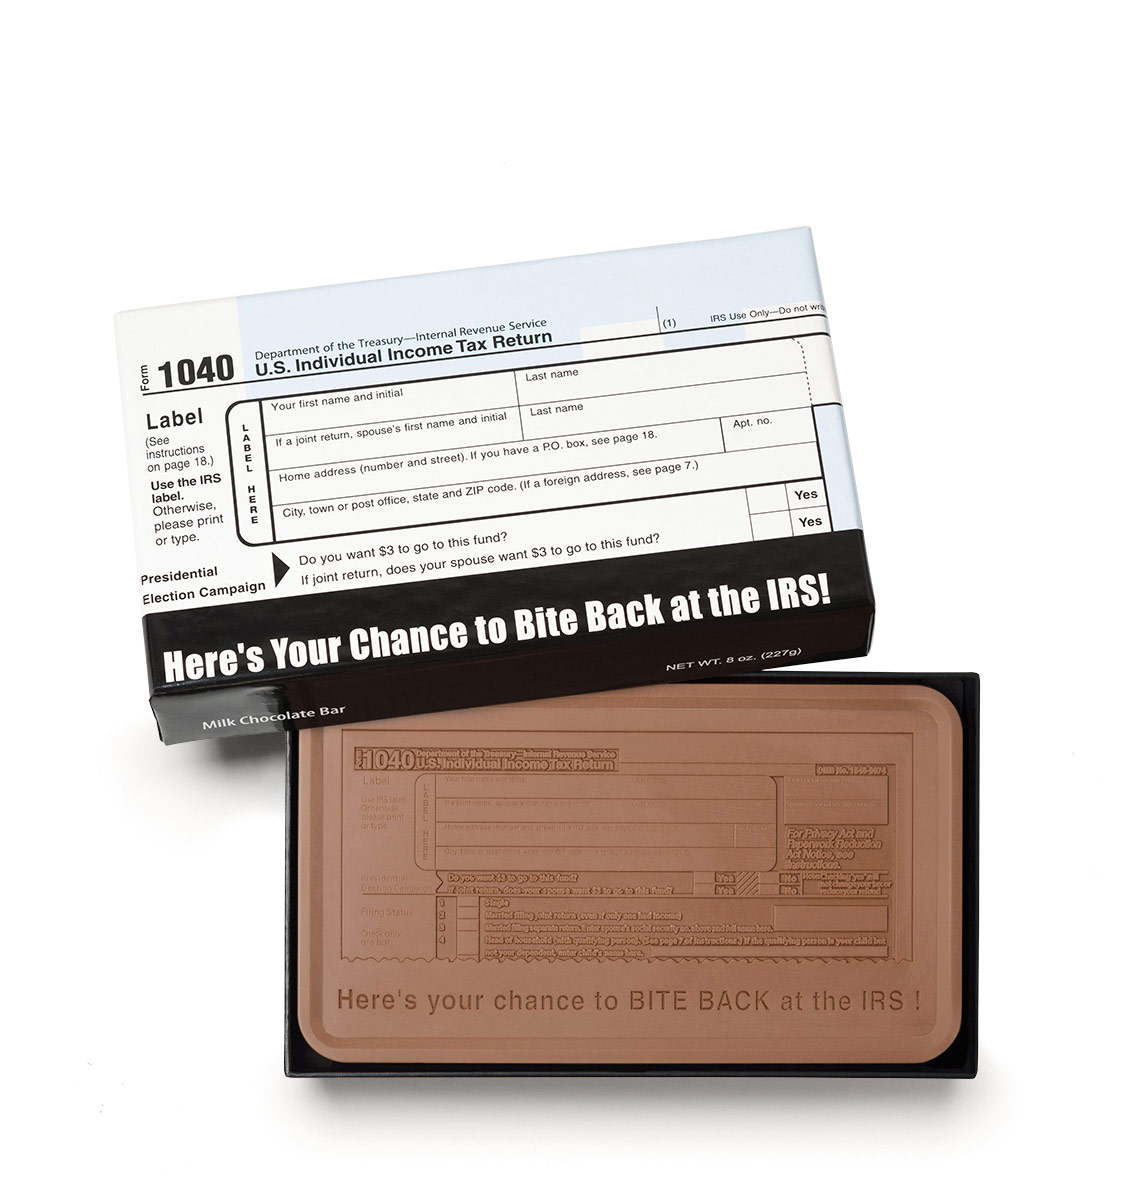 IRS 1040 Deluxe Milk Chocolate Bars Promo Items   Totally Chocolate